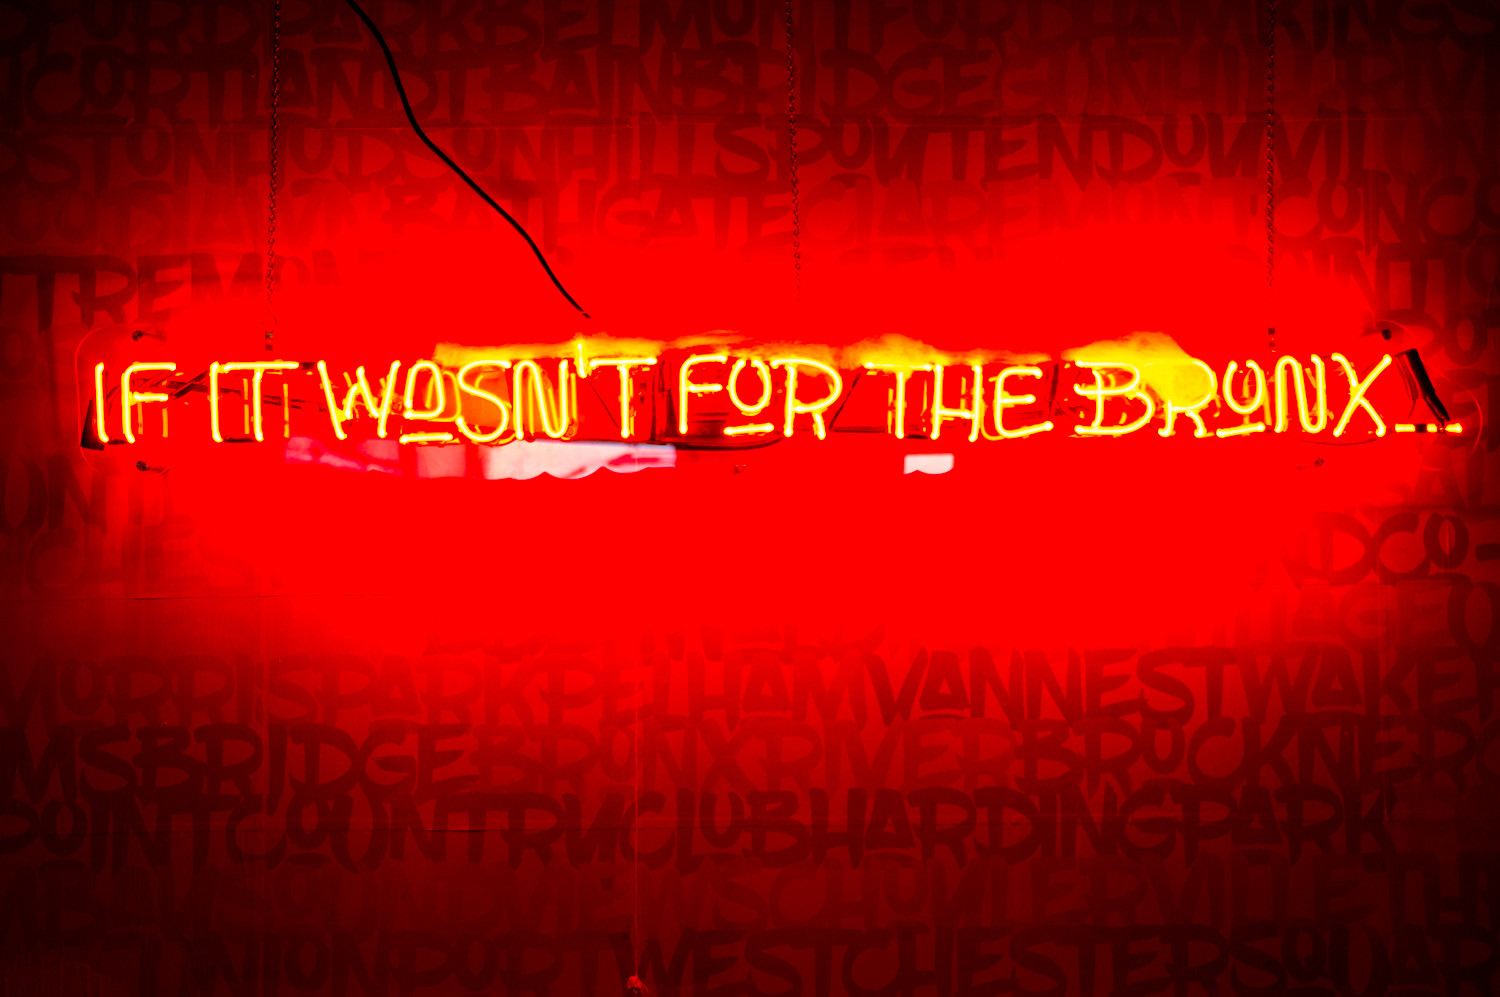 The Bronx Public has a variety of art on the wall, including a neon sign that reads 'If it wasn't for the Bronx,' which celebrates Bronx culture.